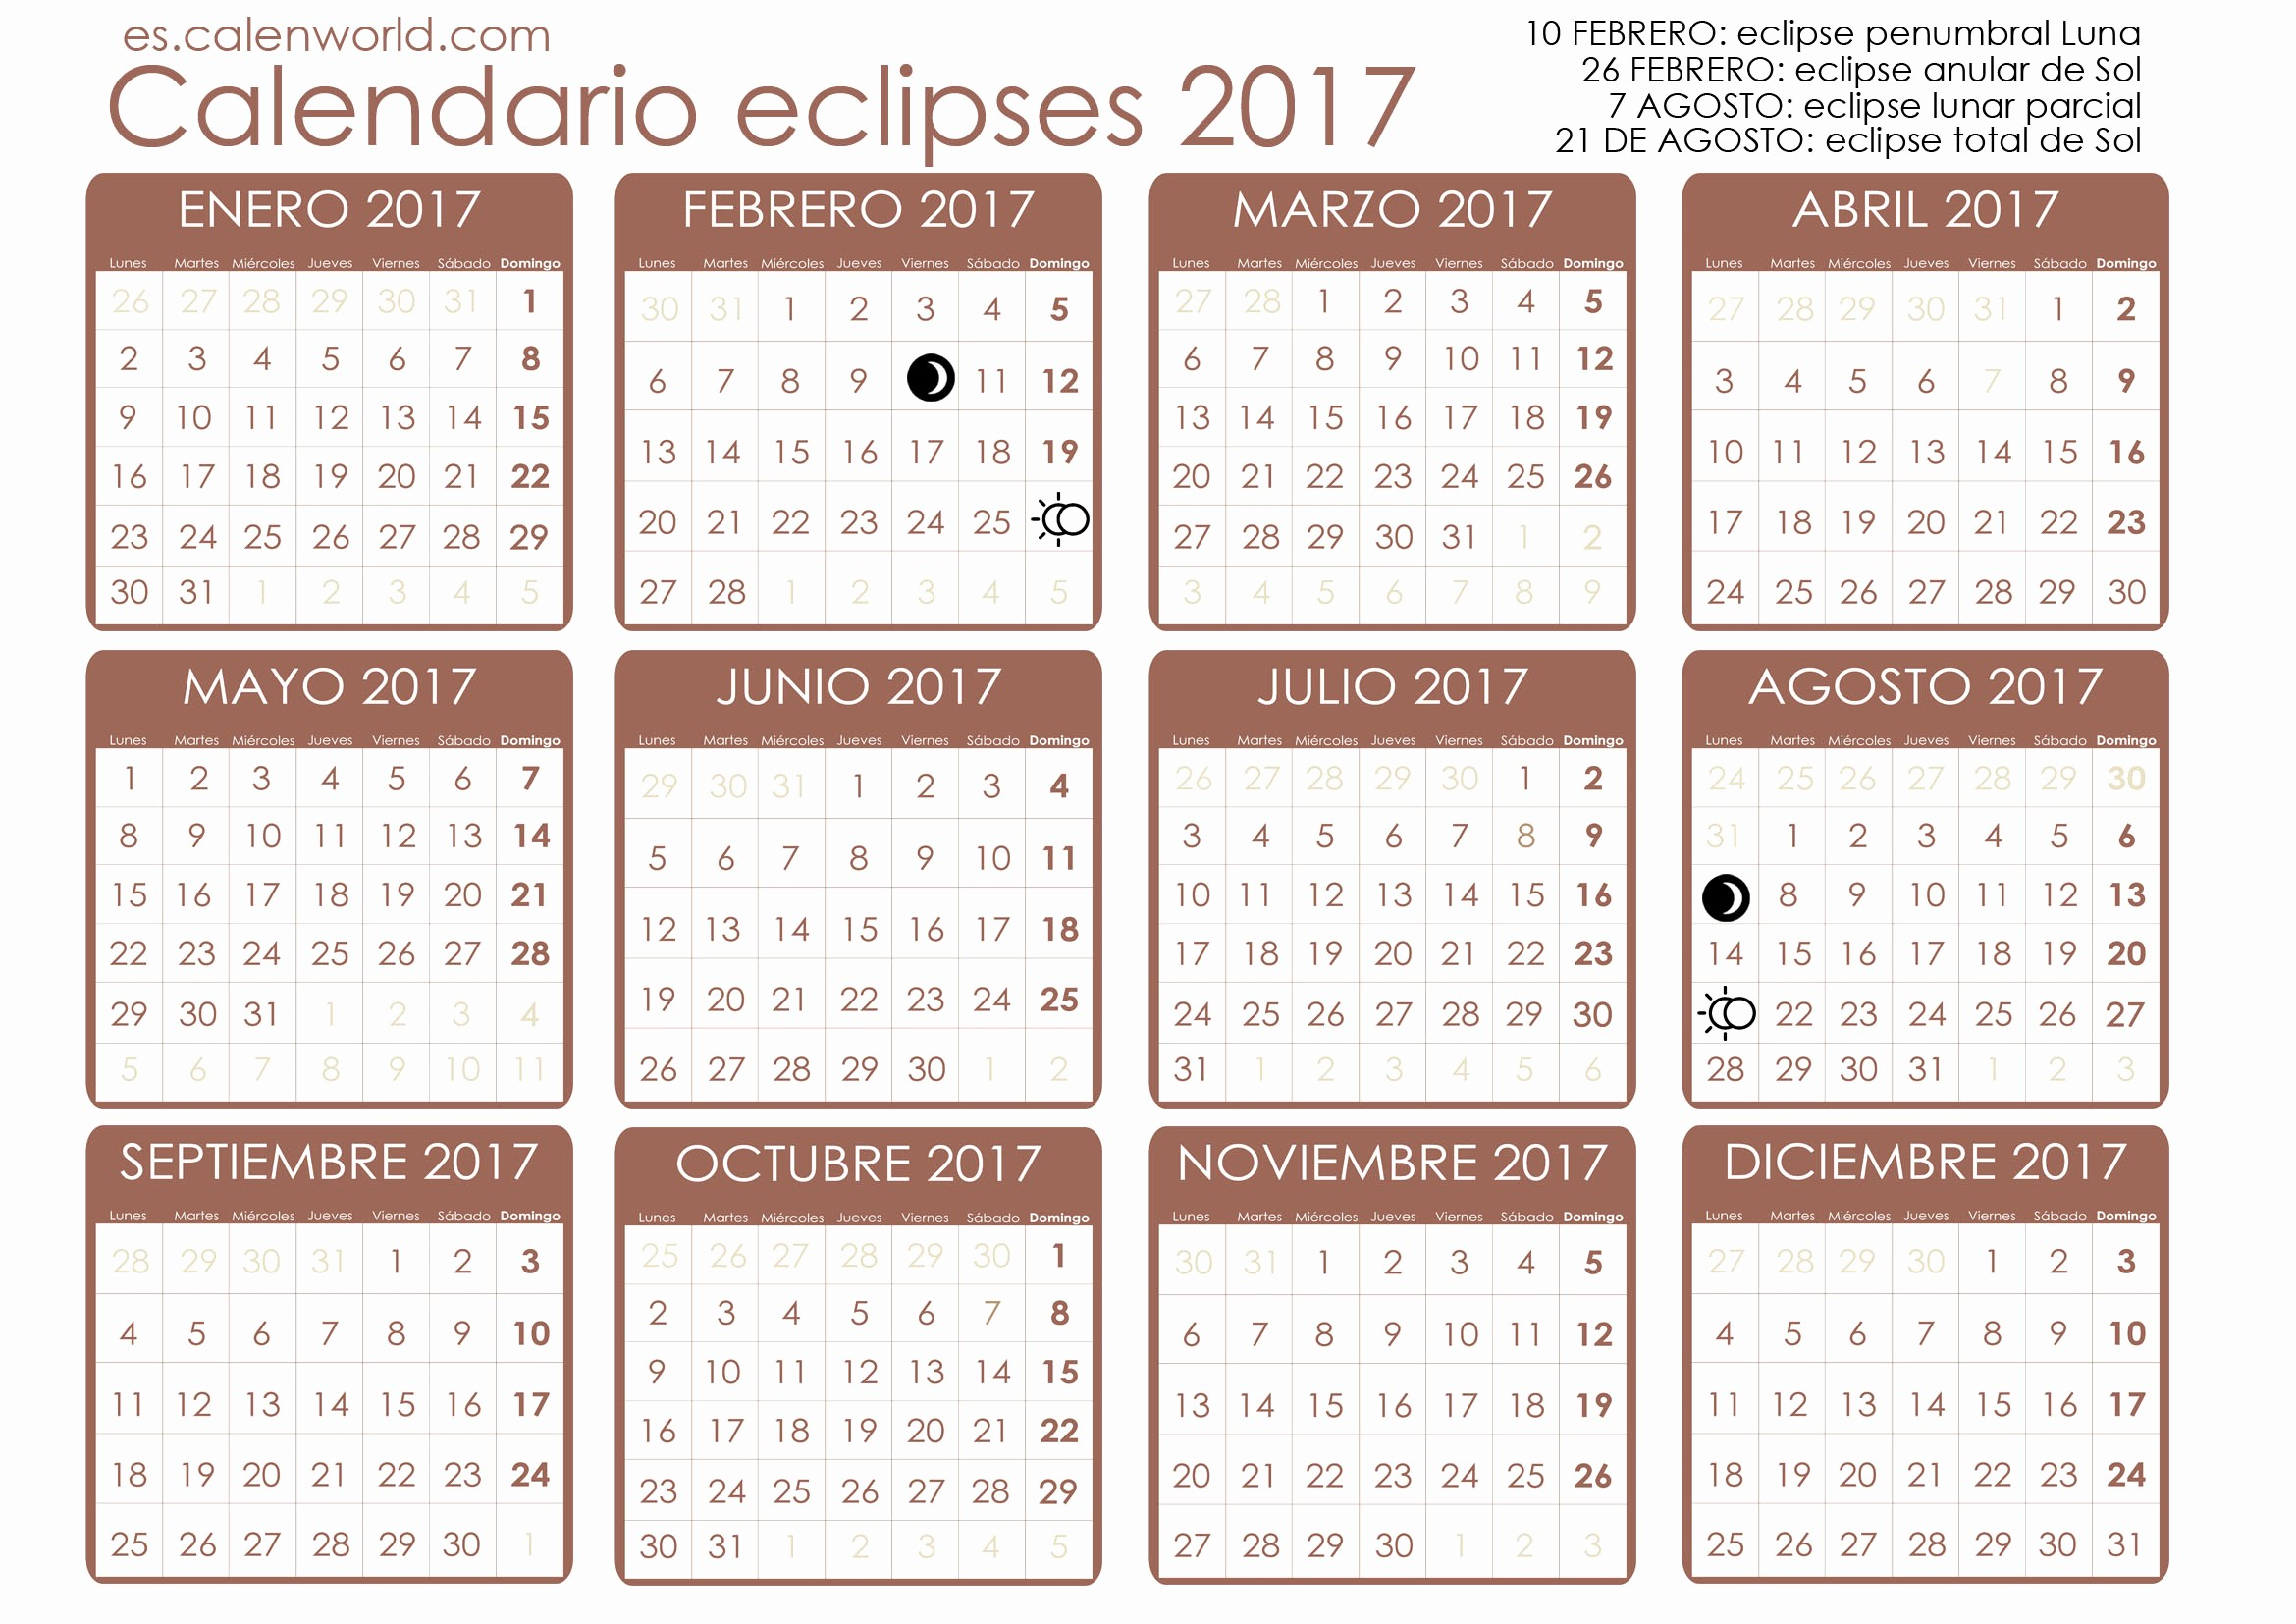 Calendario Juliano 2017 Para Imprimir Luxury Calendario De Eclipses 2017